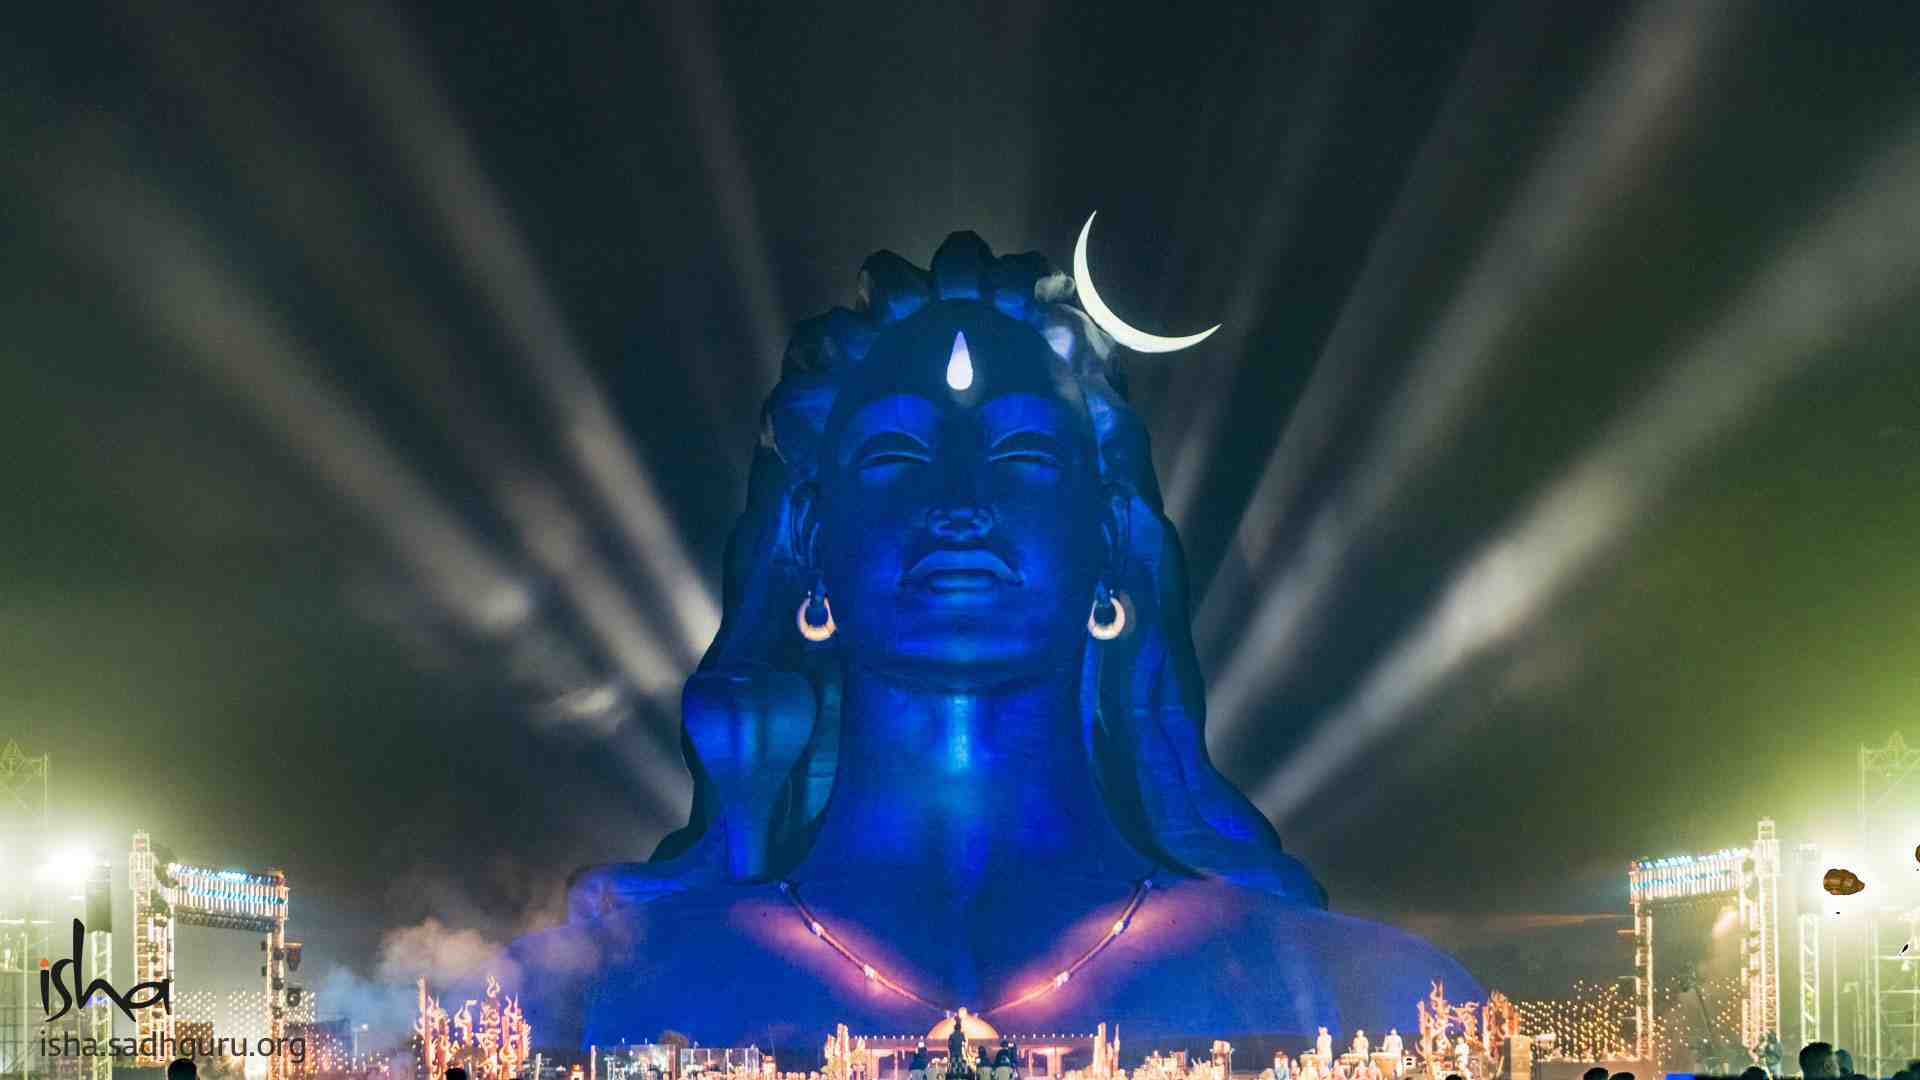 Shiva Wallpaper - Mahashivratri celebrations at the 112 ft Adiyogi Statue